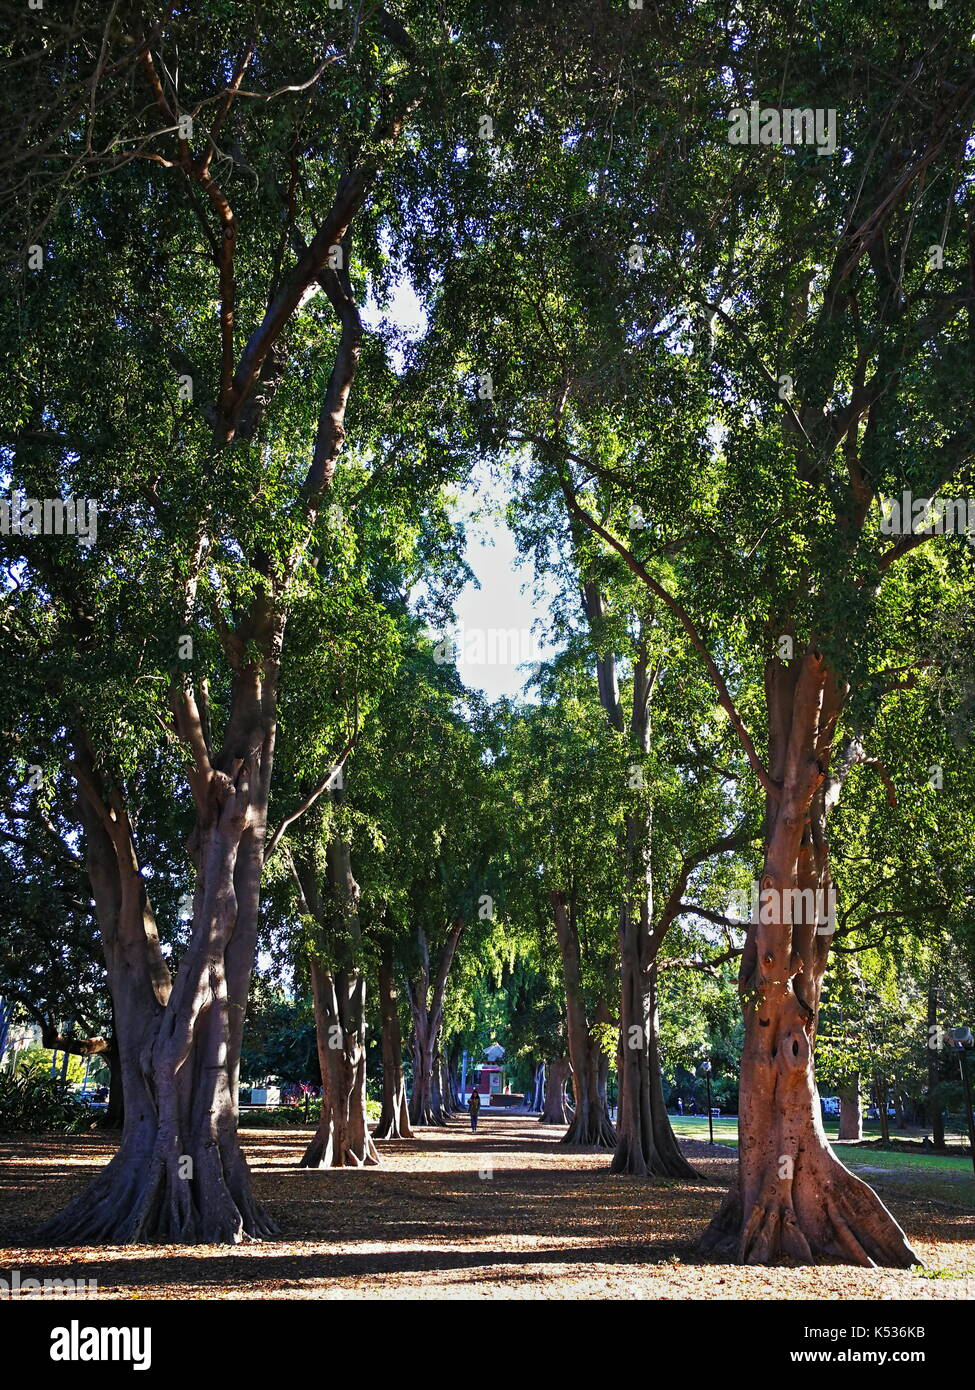 Beautiful very old and huge fig trees nicely lined up in a row in the Brisbane City Botanic Gardens, Brisbane, Queensland, Australia - Stock Image